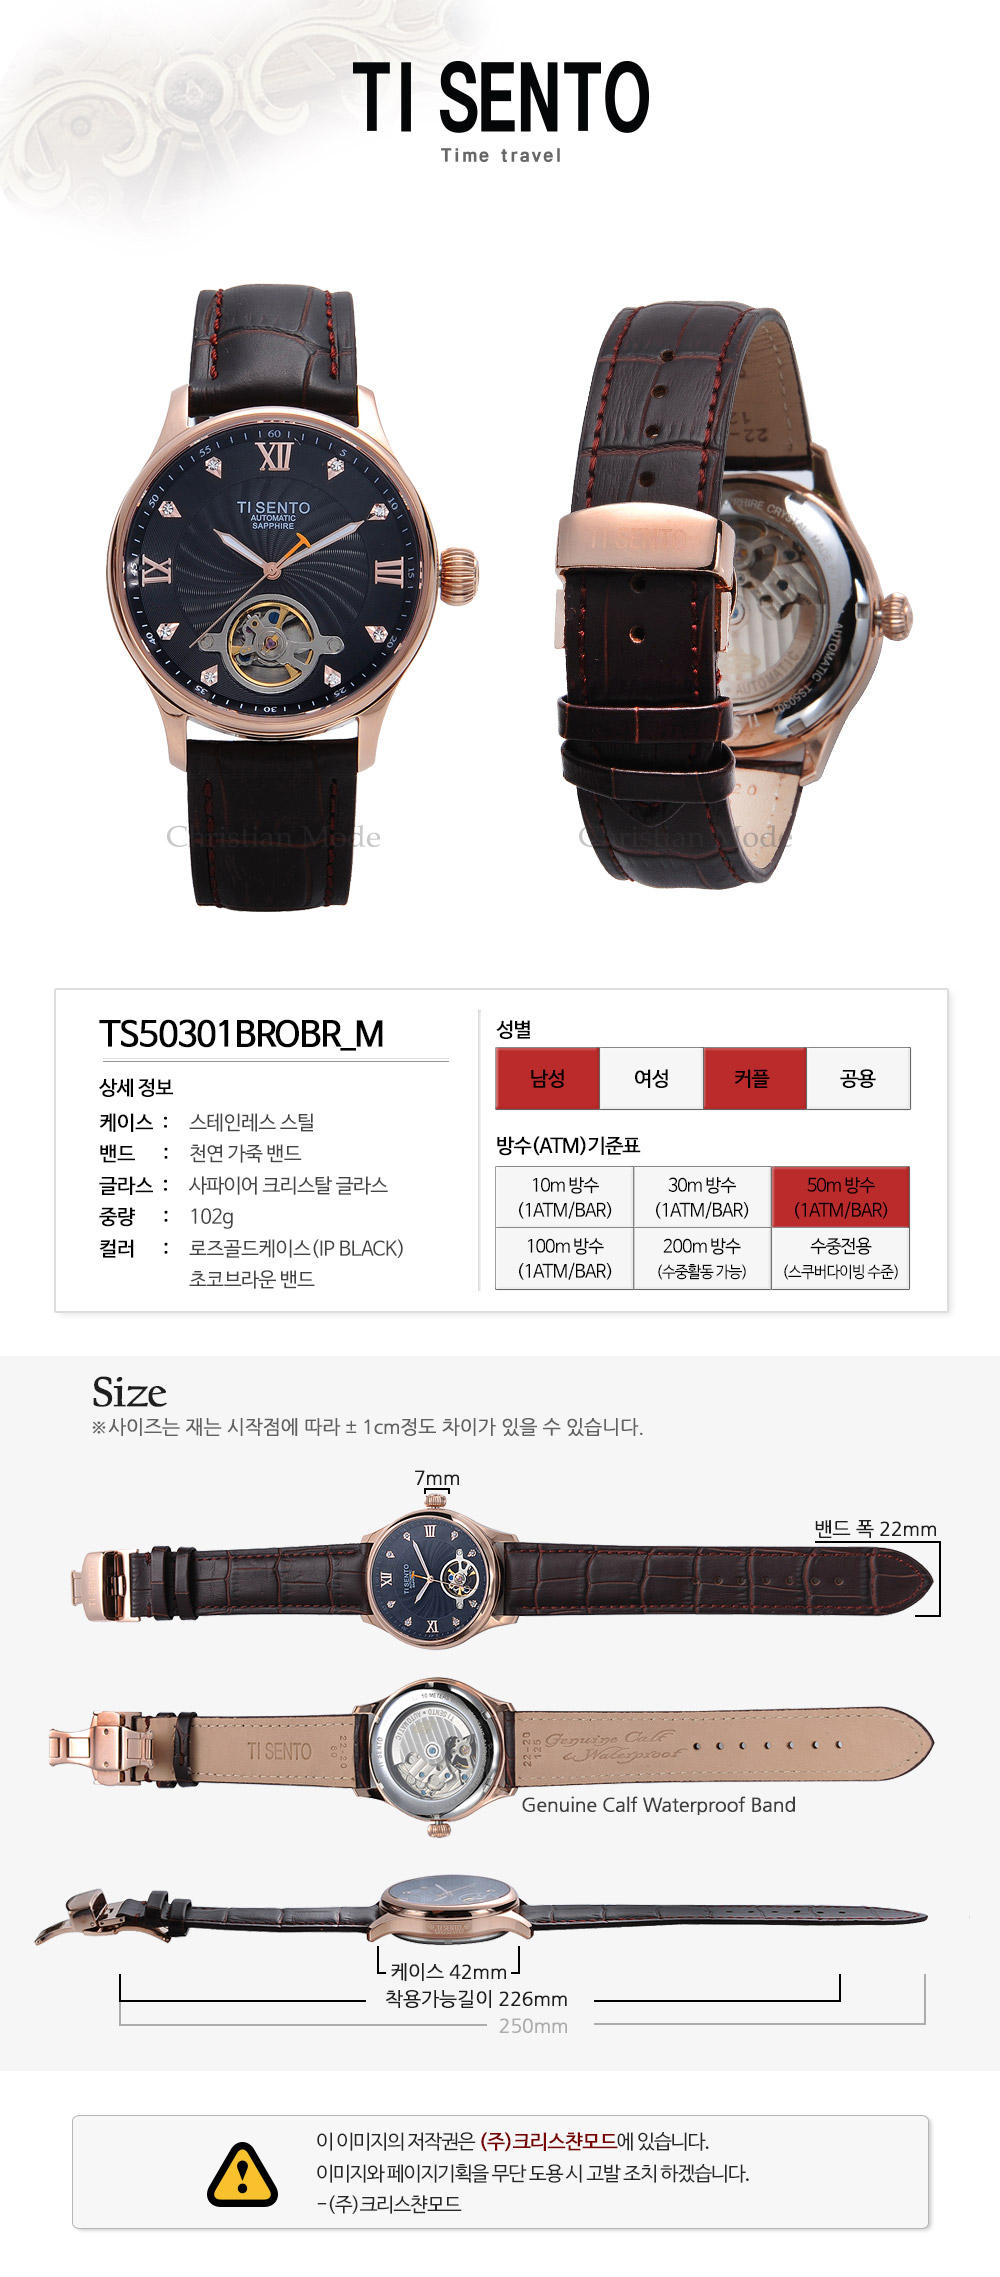 [ TISENTO ] KOREA MADE HIGH QUALITY AUTOMATIC MECHANICAL GENUINE CALF WATERPROOF LEATHER STRAP WATCH TS 50301 BROBR M